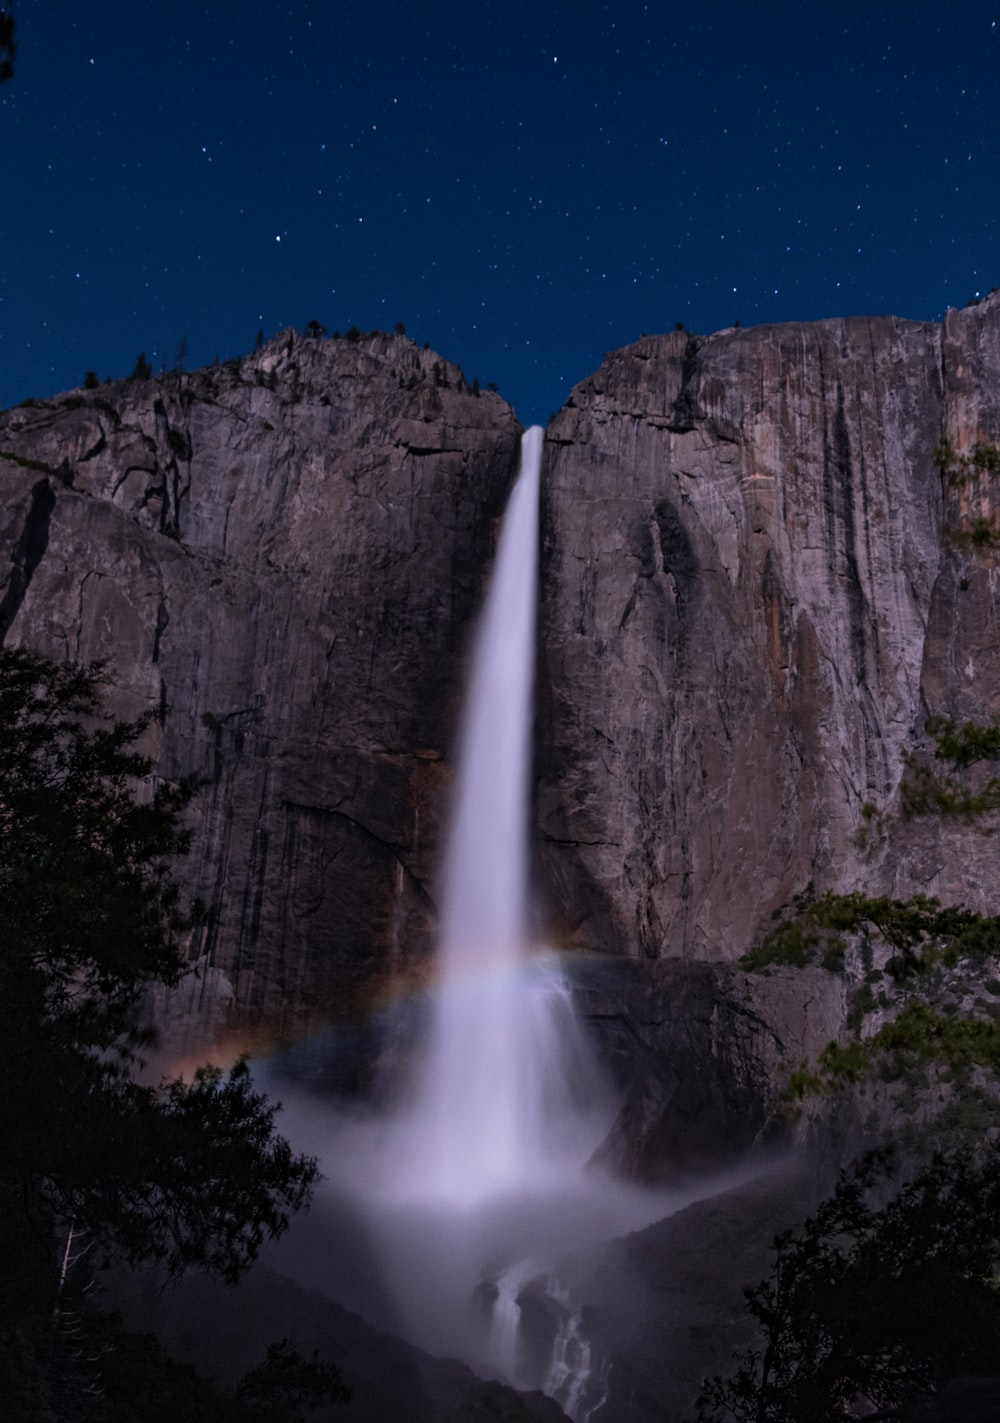 rainbow in front of waterfalls at night time